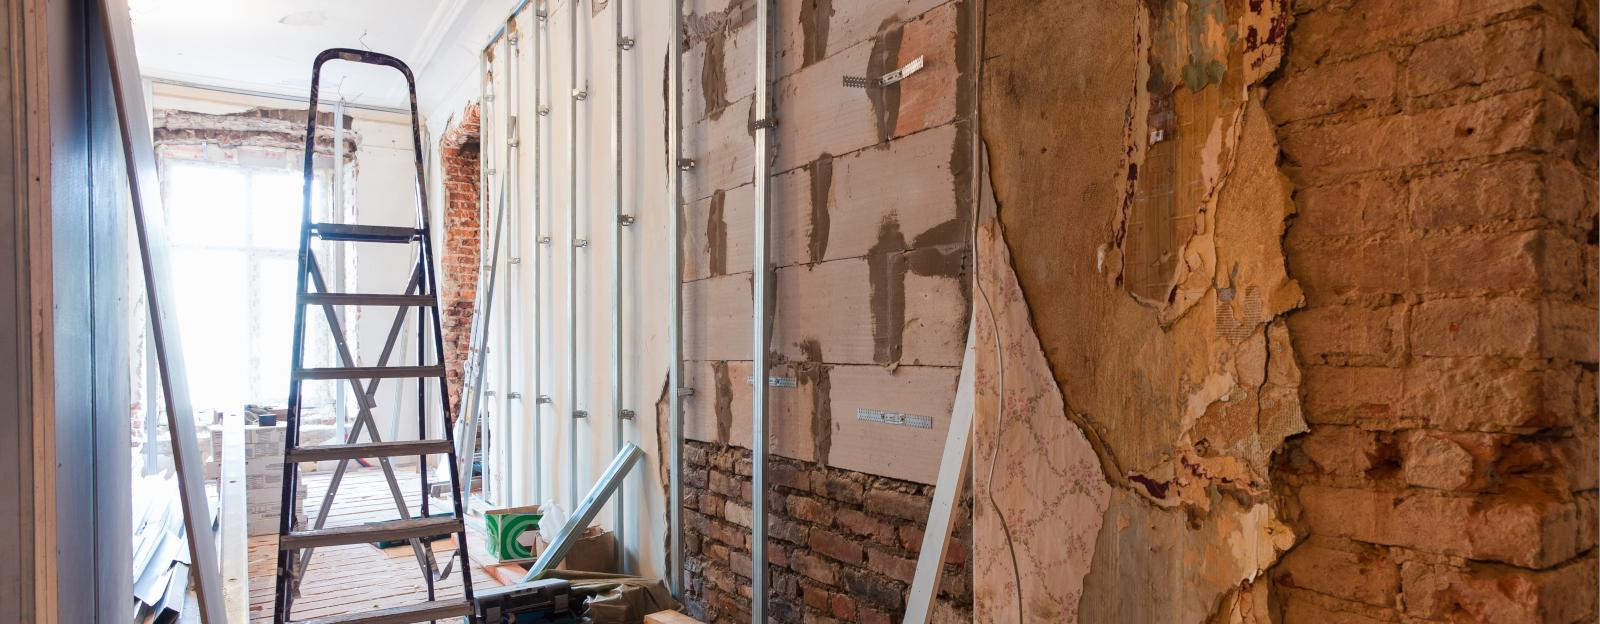 Insuring unoccupied residential properties and those undergoing renovations